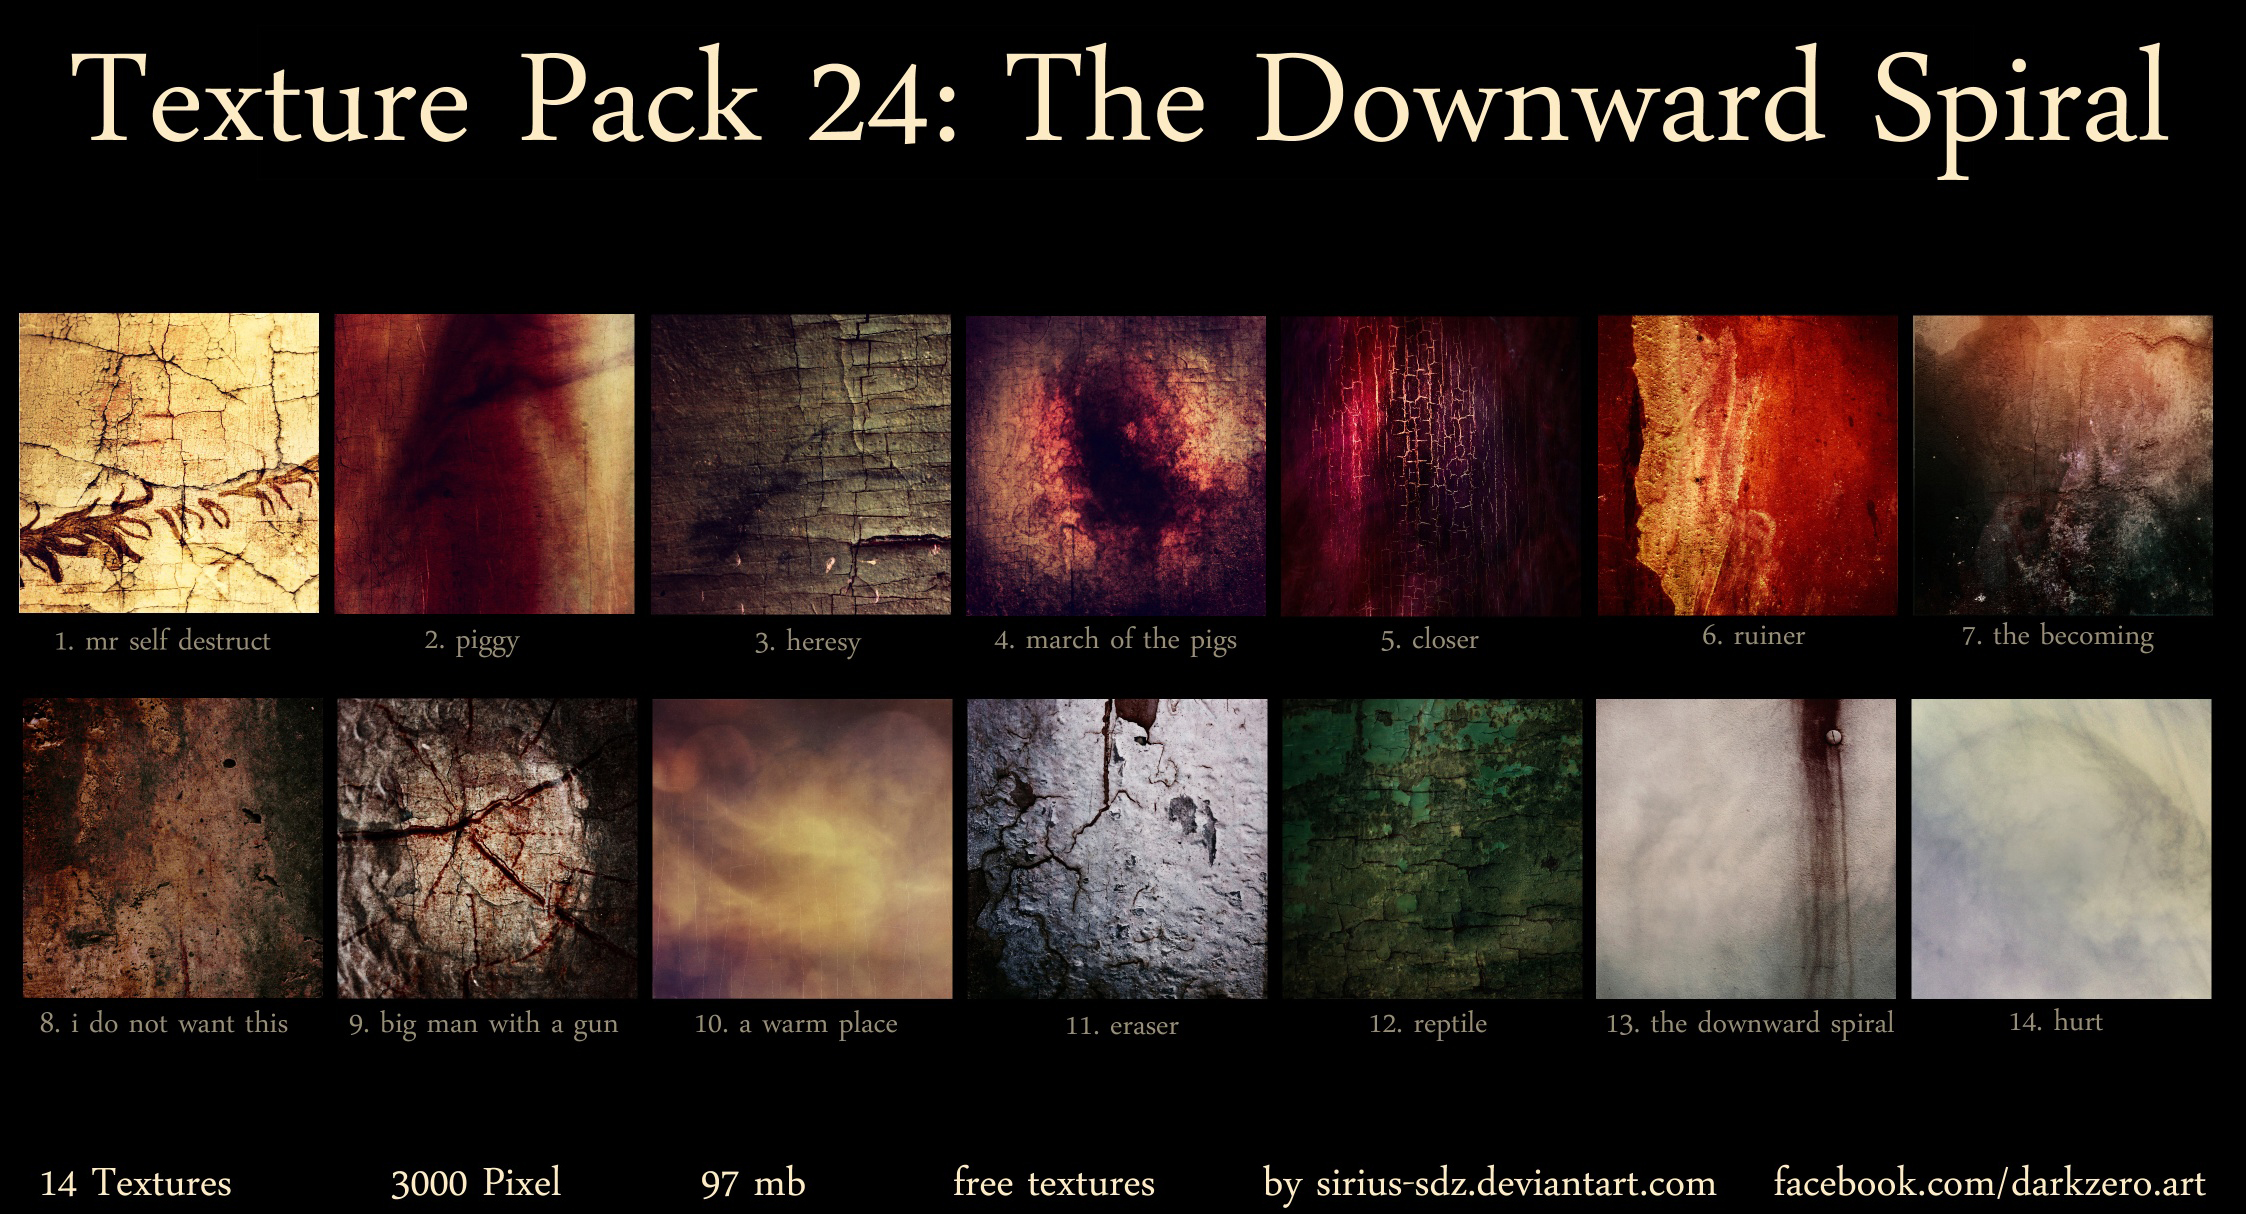 Texture Pack 24: The Downward Spiral